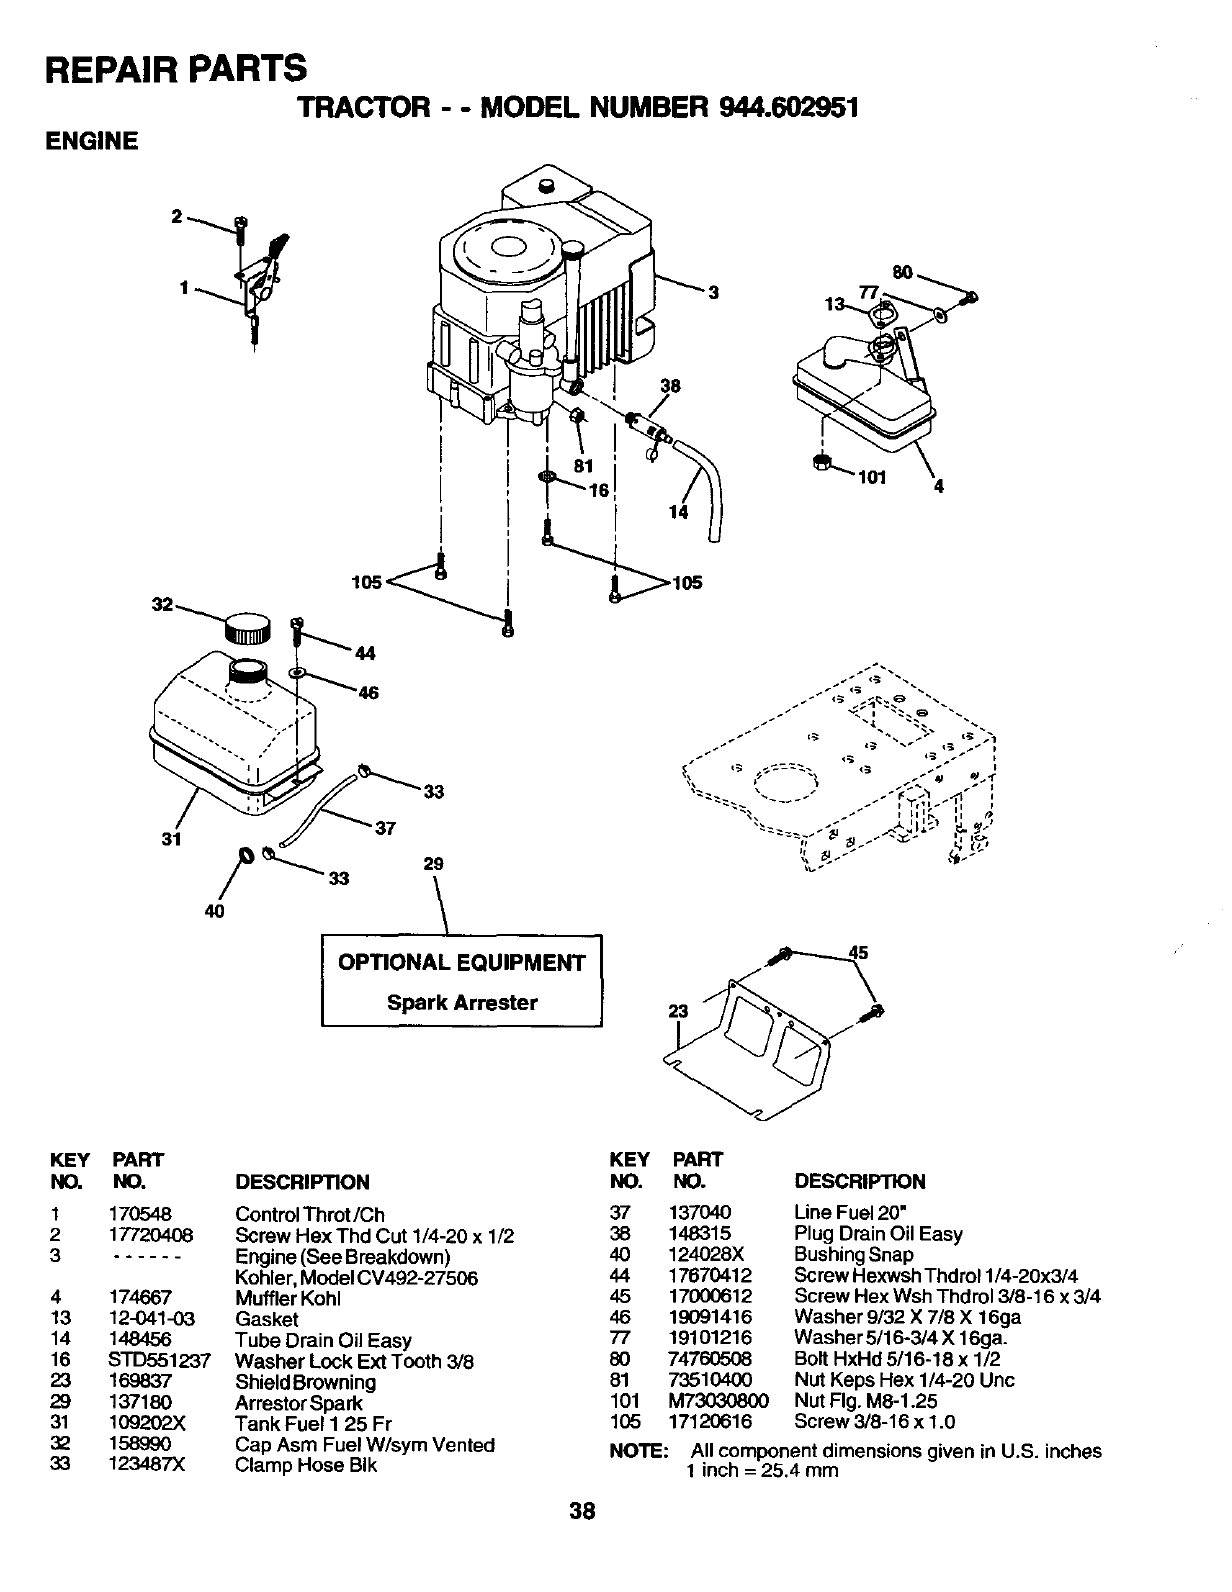 Page 38 of Craftsman Lawn Mower 944.602951 User Guide